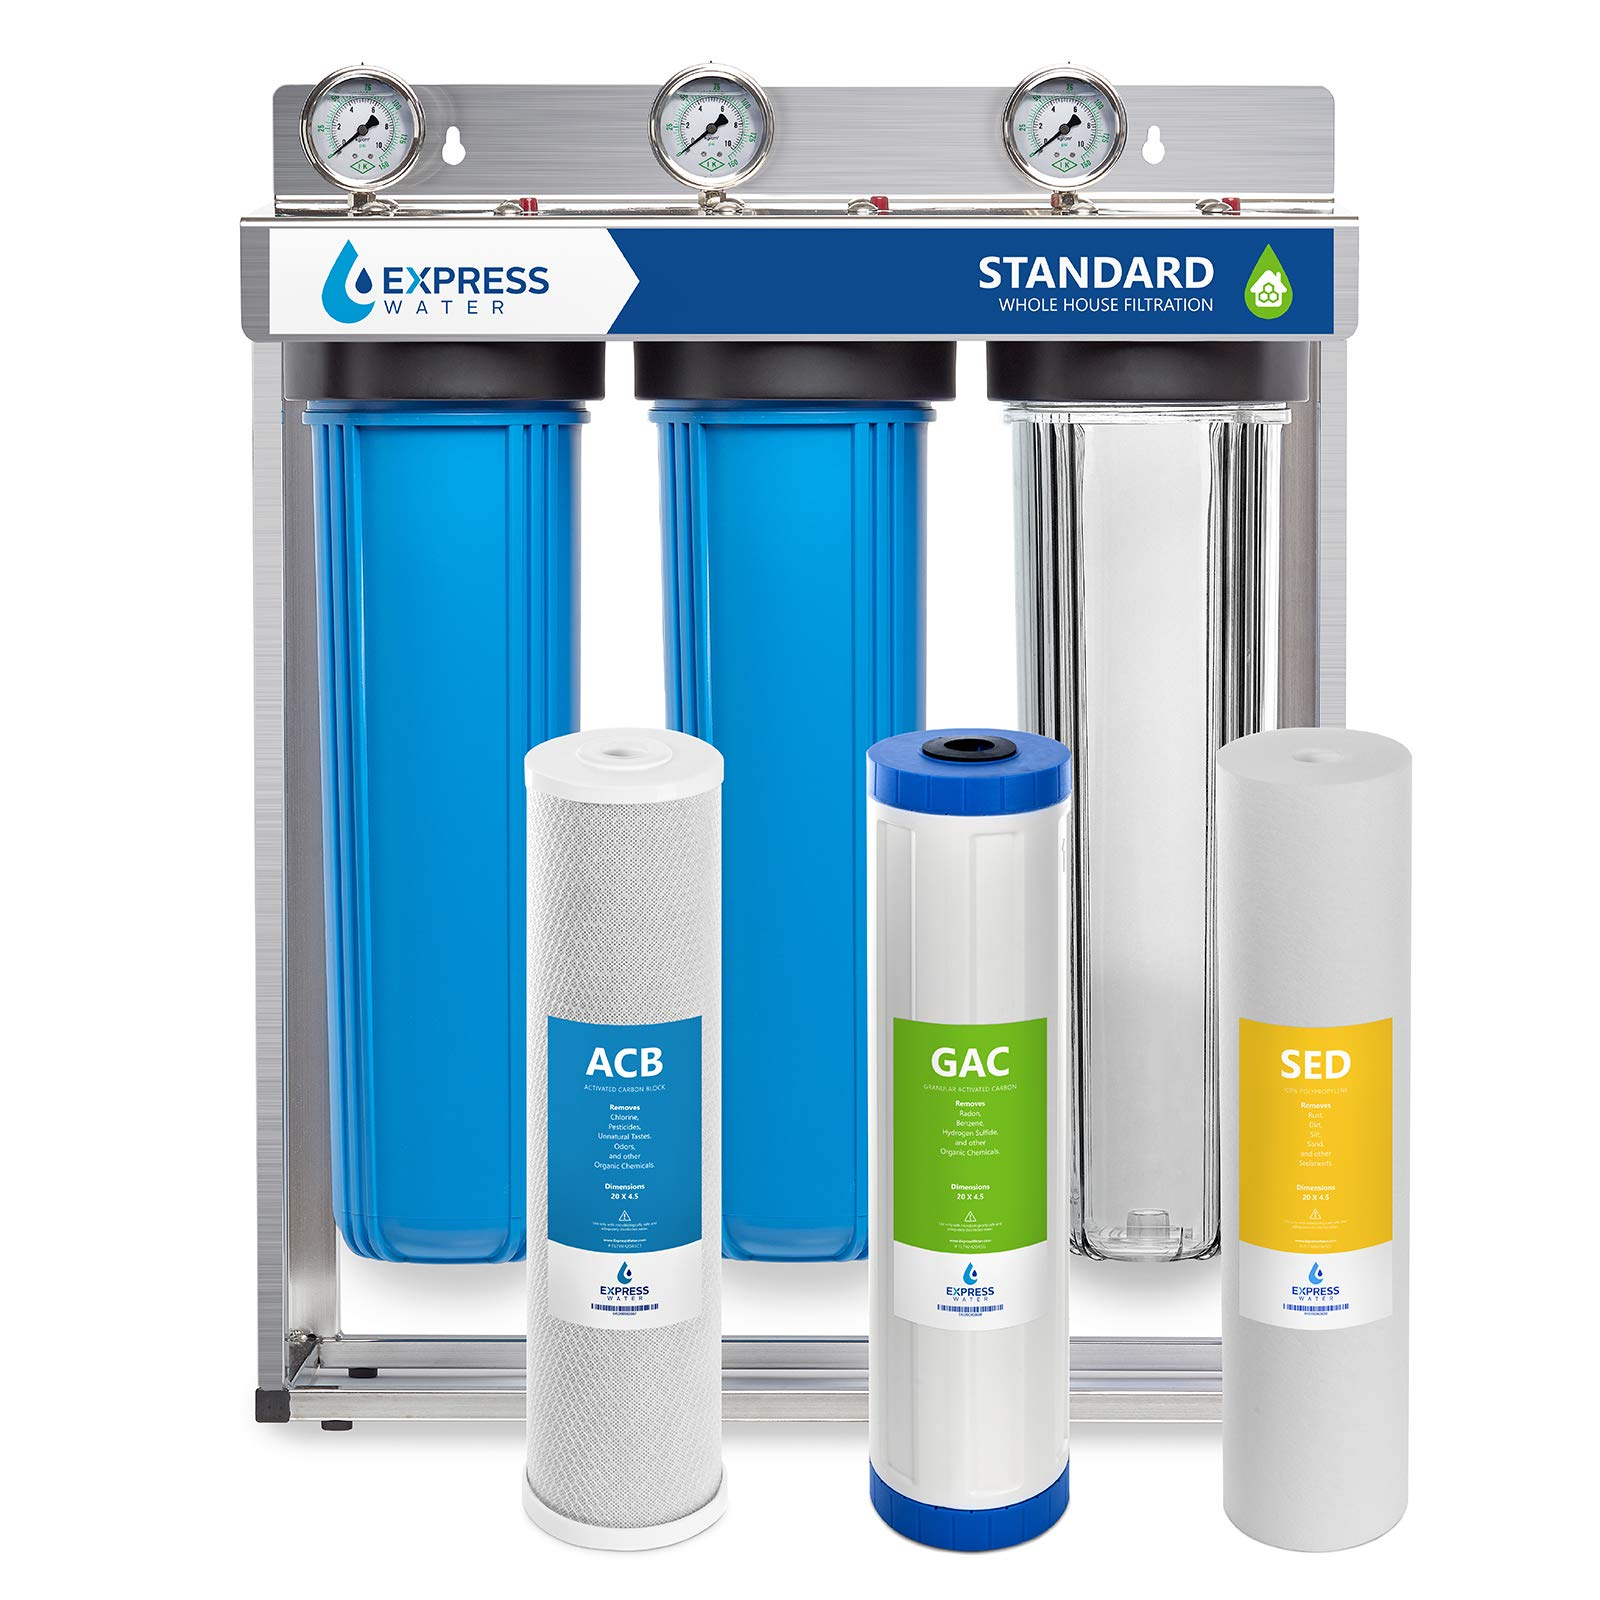 Express Water Whole House Water Filter, 3 Stage Home Water Filtration System, Sediment, Charcoal, Carbon Filters includes Pressure Gauges, Easy Release, and 1 Inch Connections by Express Water